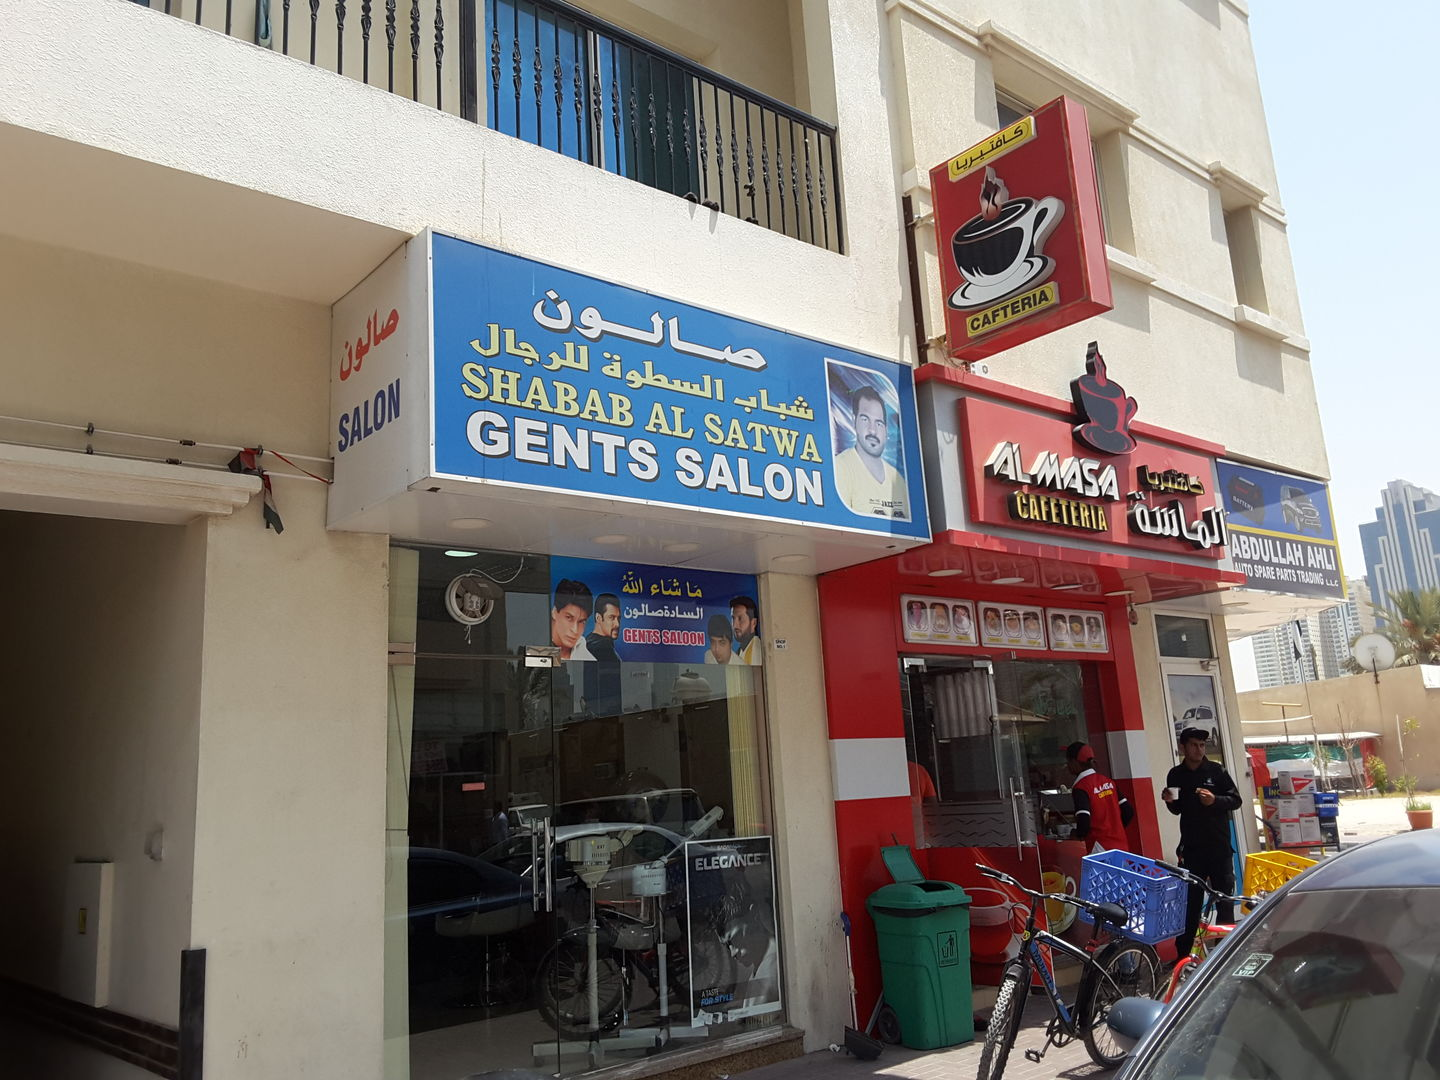 HiDubai-business-shabab-al-satwa-gents-salon-beauty-wellness-health-beauty-salons-al-satwa-dubai-2